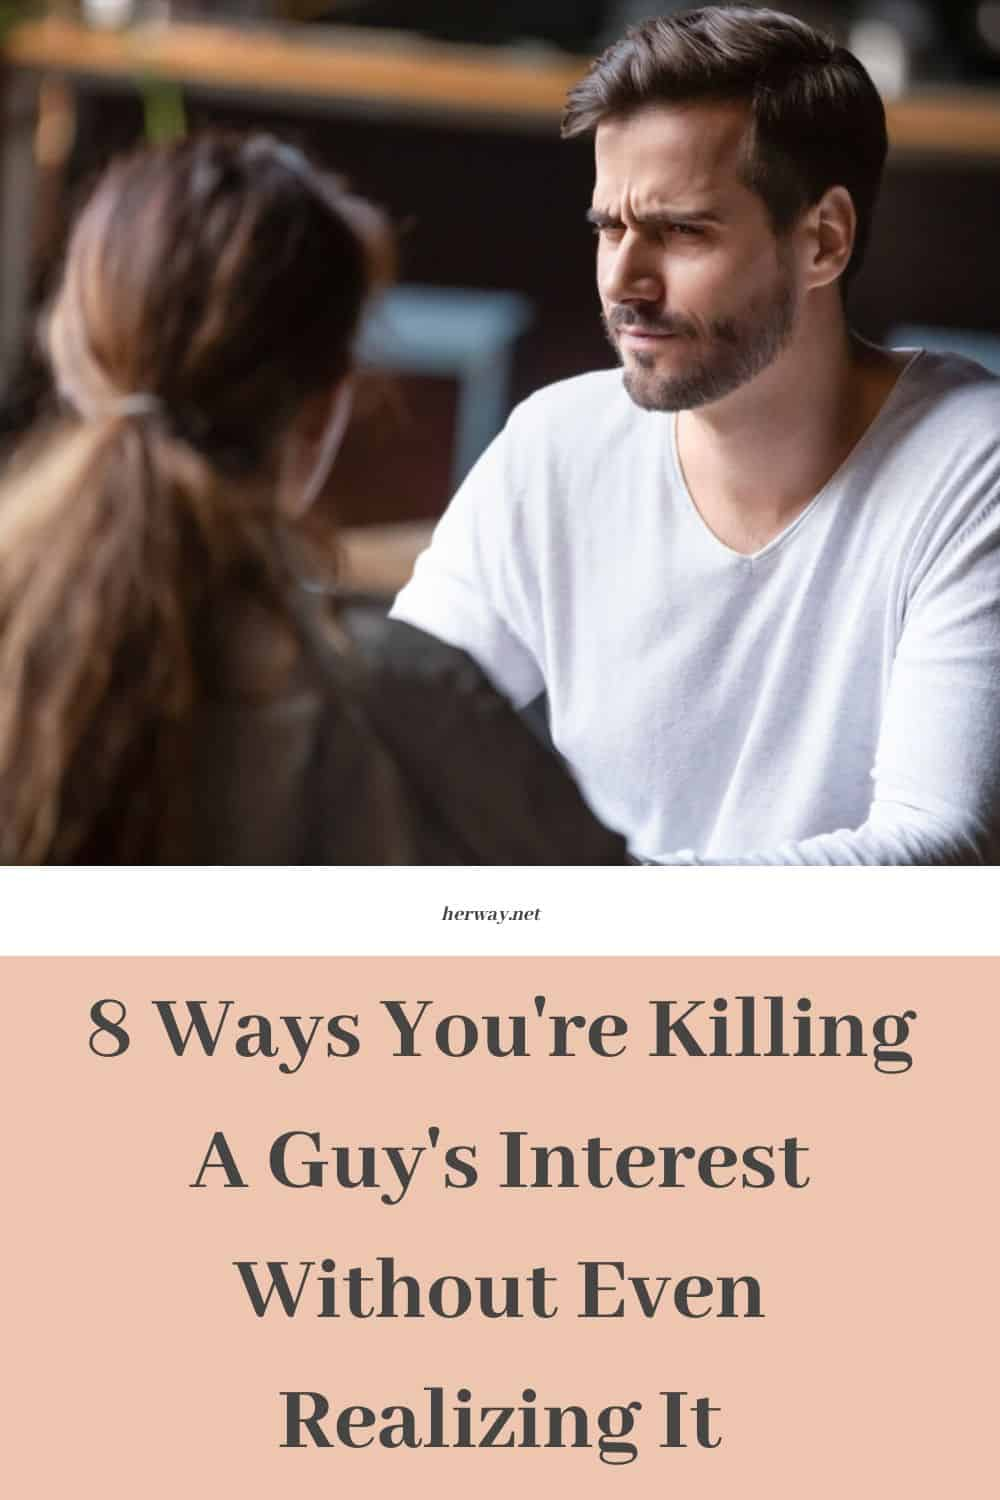 8 Ways You're Killing A Guy's Interest Without Even Realizing It